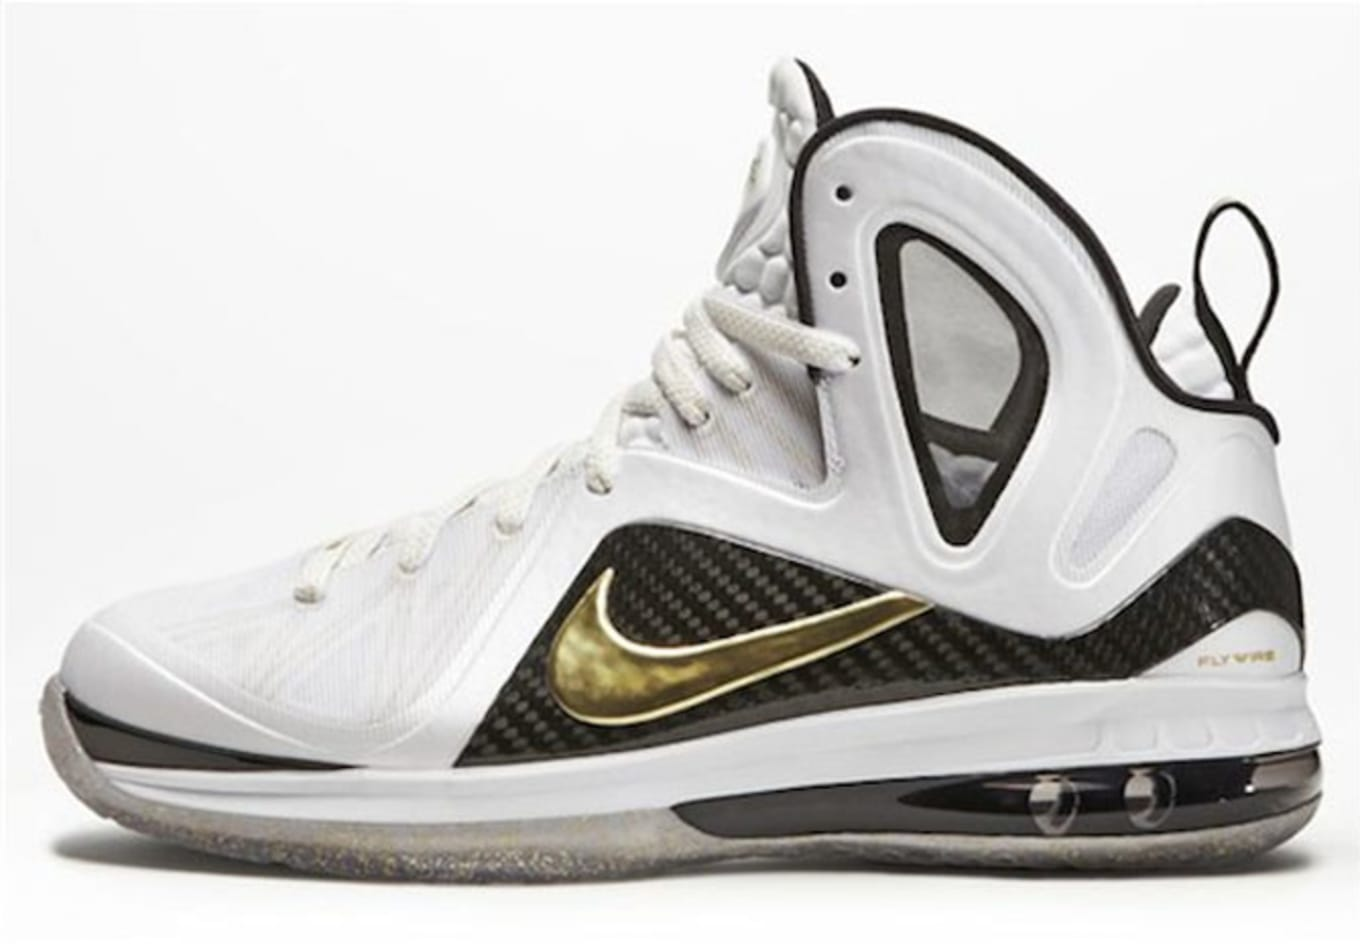 fd25766e4b20 The Elite edition of the LeBron 9 may have been one of the most expensive  shoes ever when it released